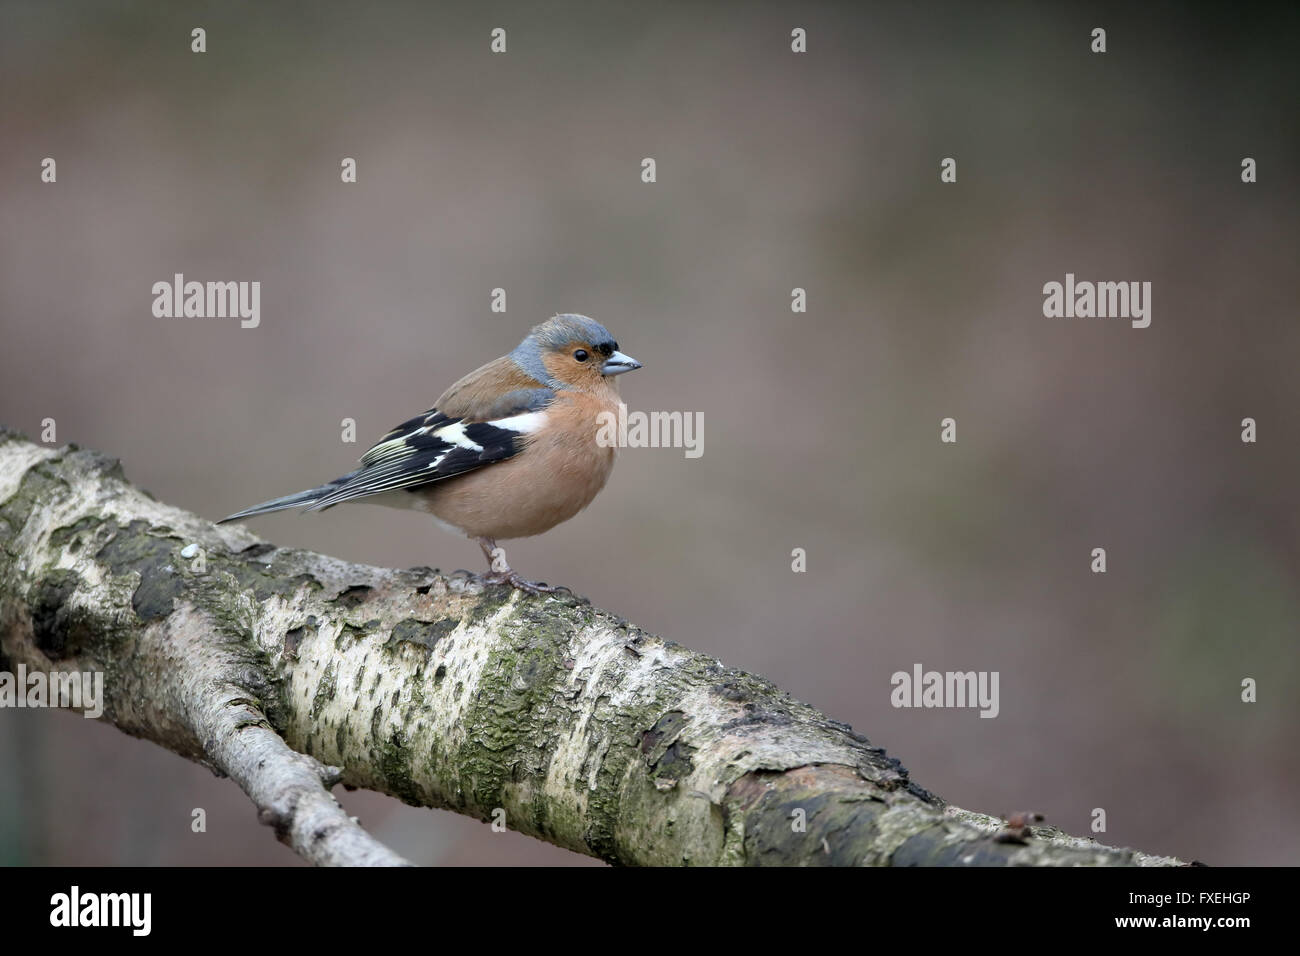 Chaffinch, Fringilla coelebs, single male on branch, Warwickshire, April 2016 - Stock Image